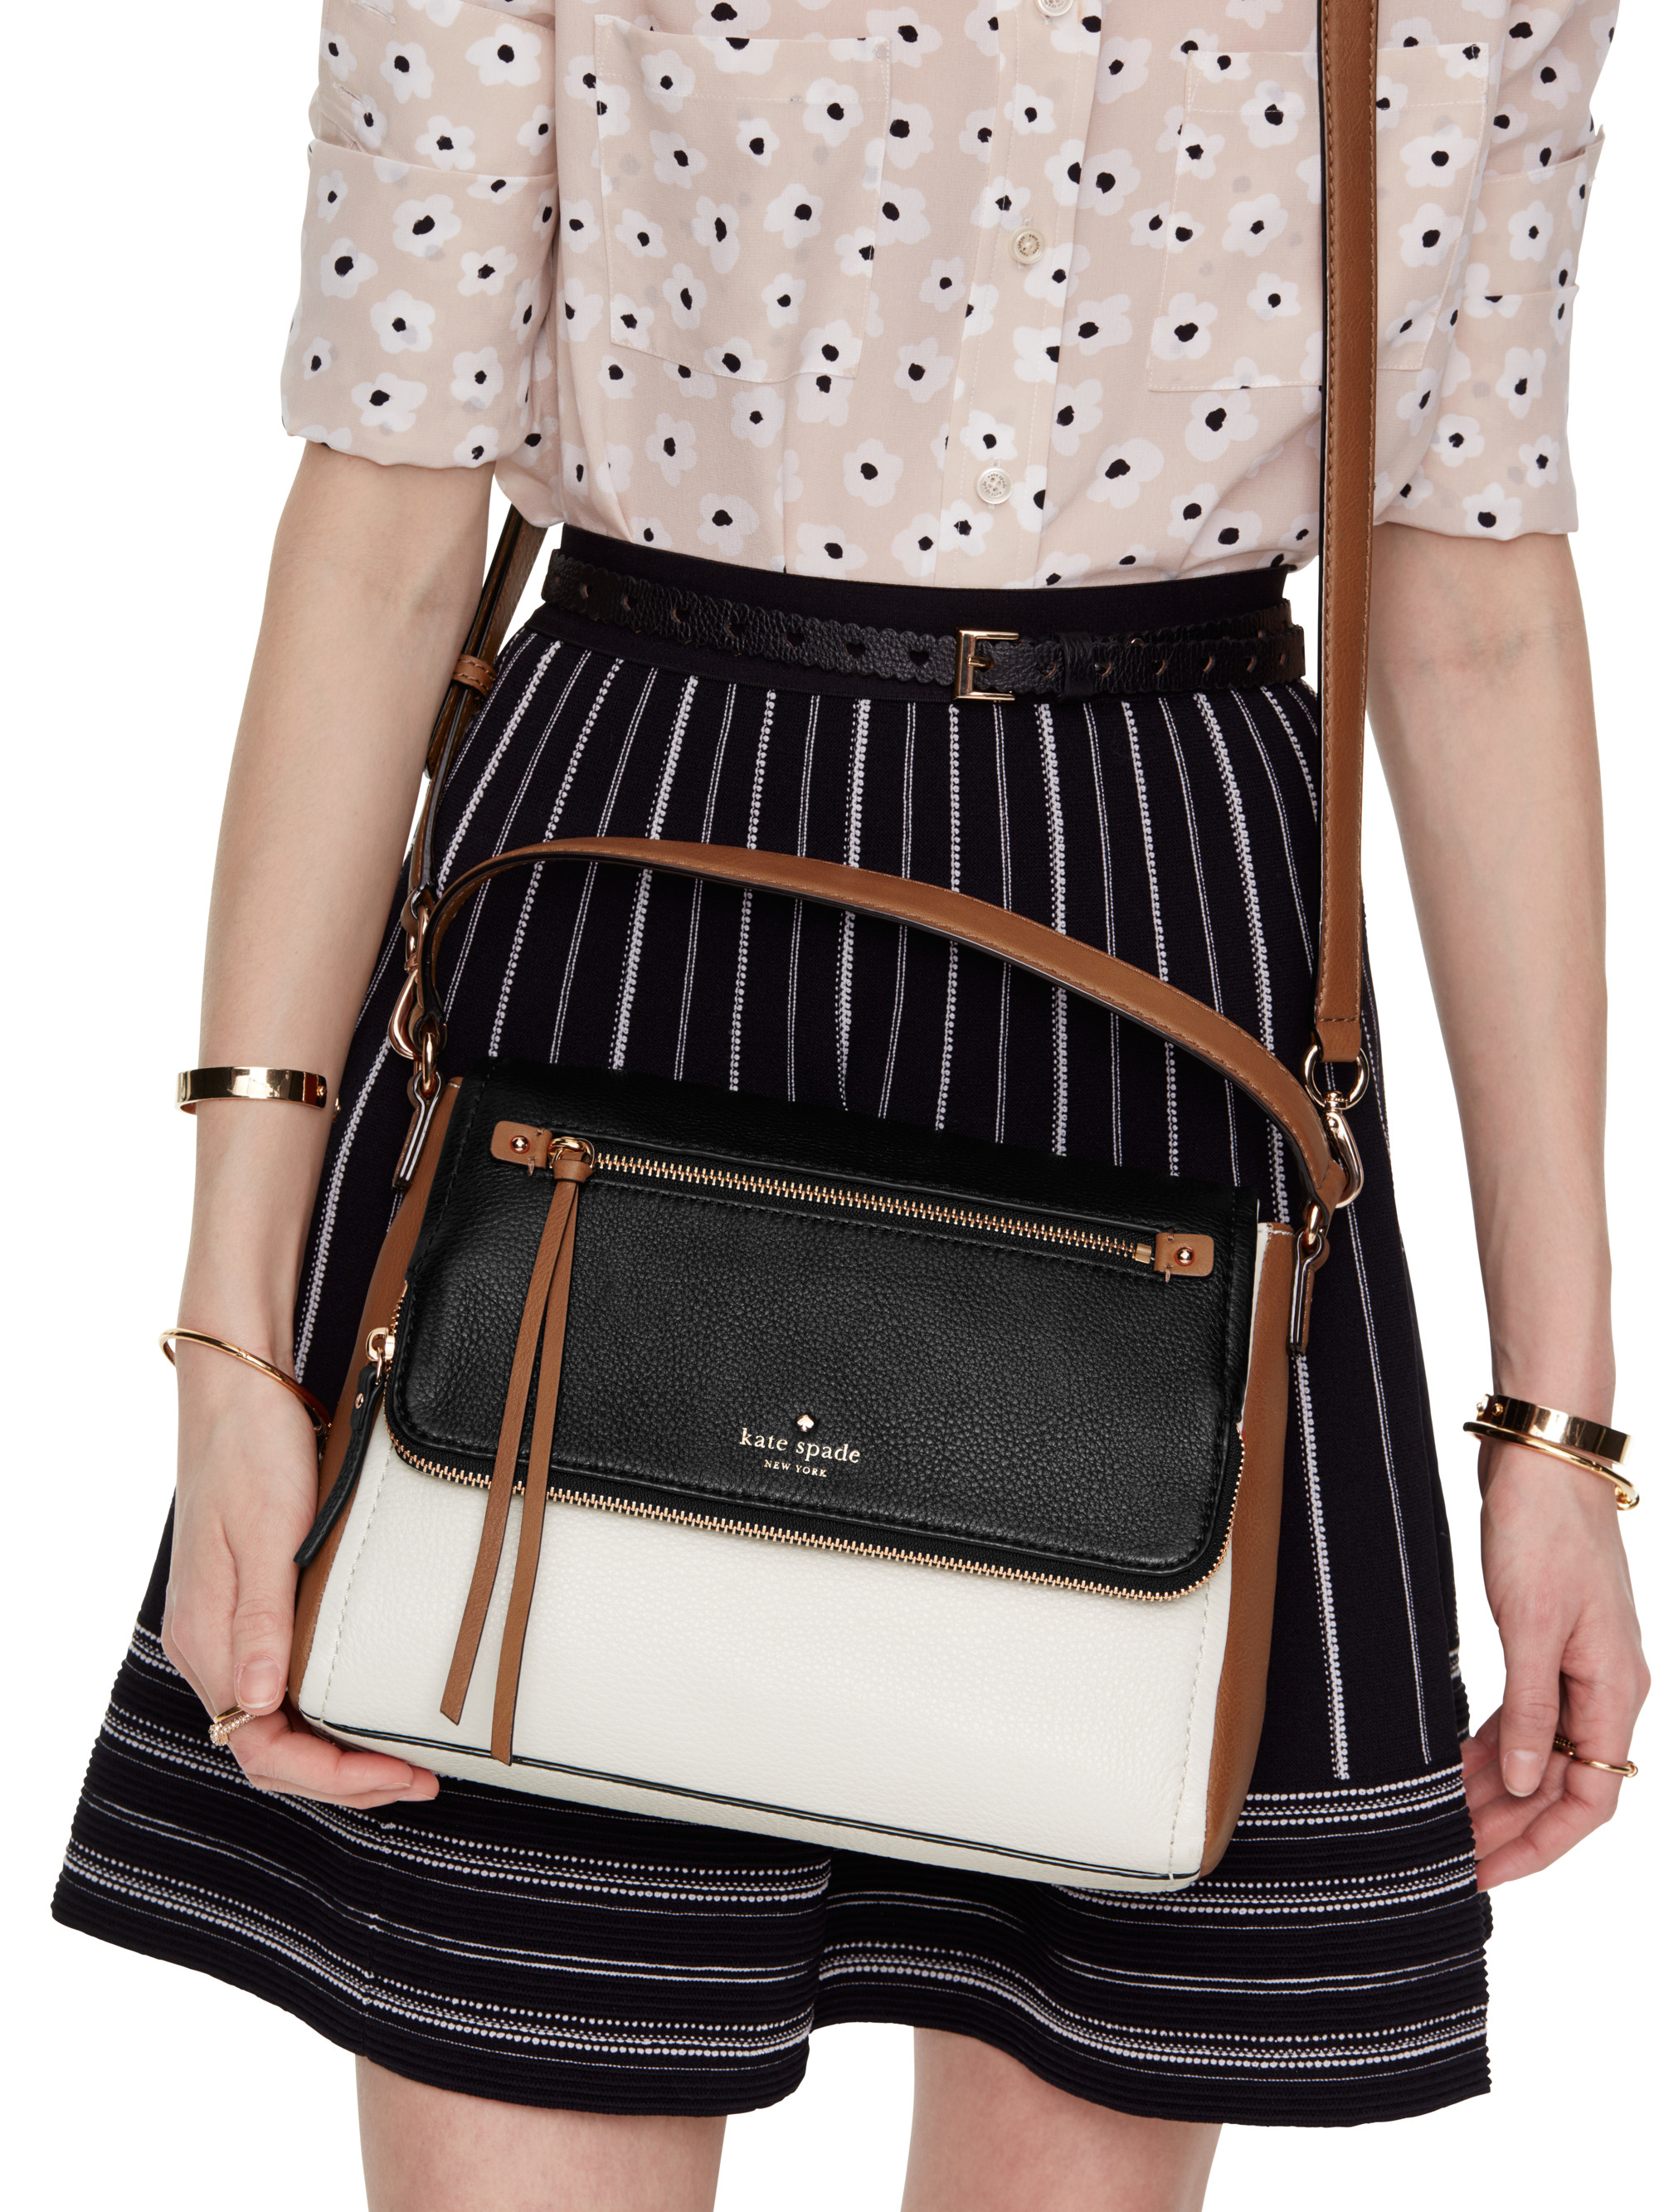 Kate Spade New York Cobble Hill Small Toddy In Black Lyst Katespade Adrien Large Two Tone Authentic Gallery